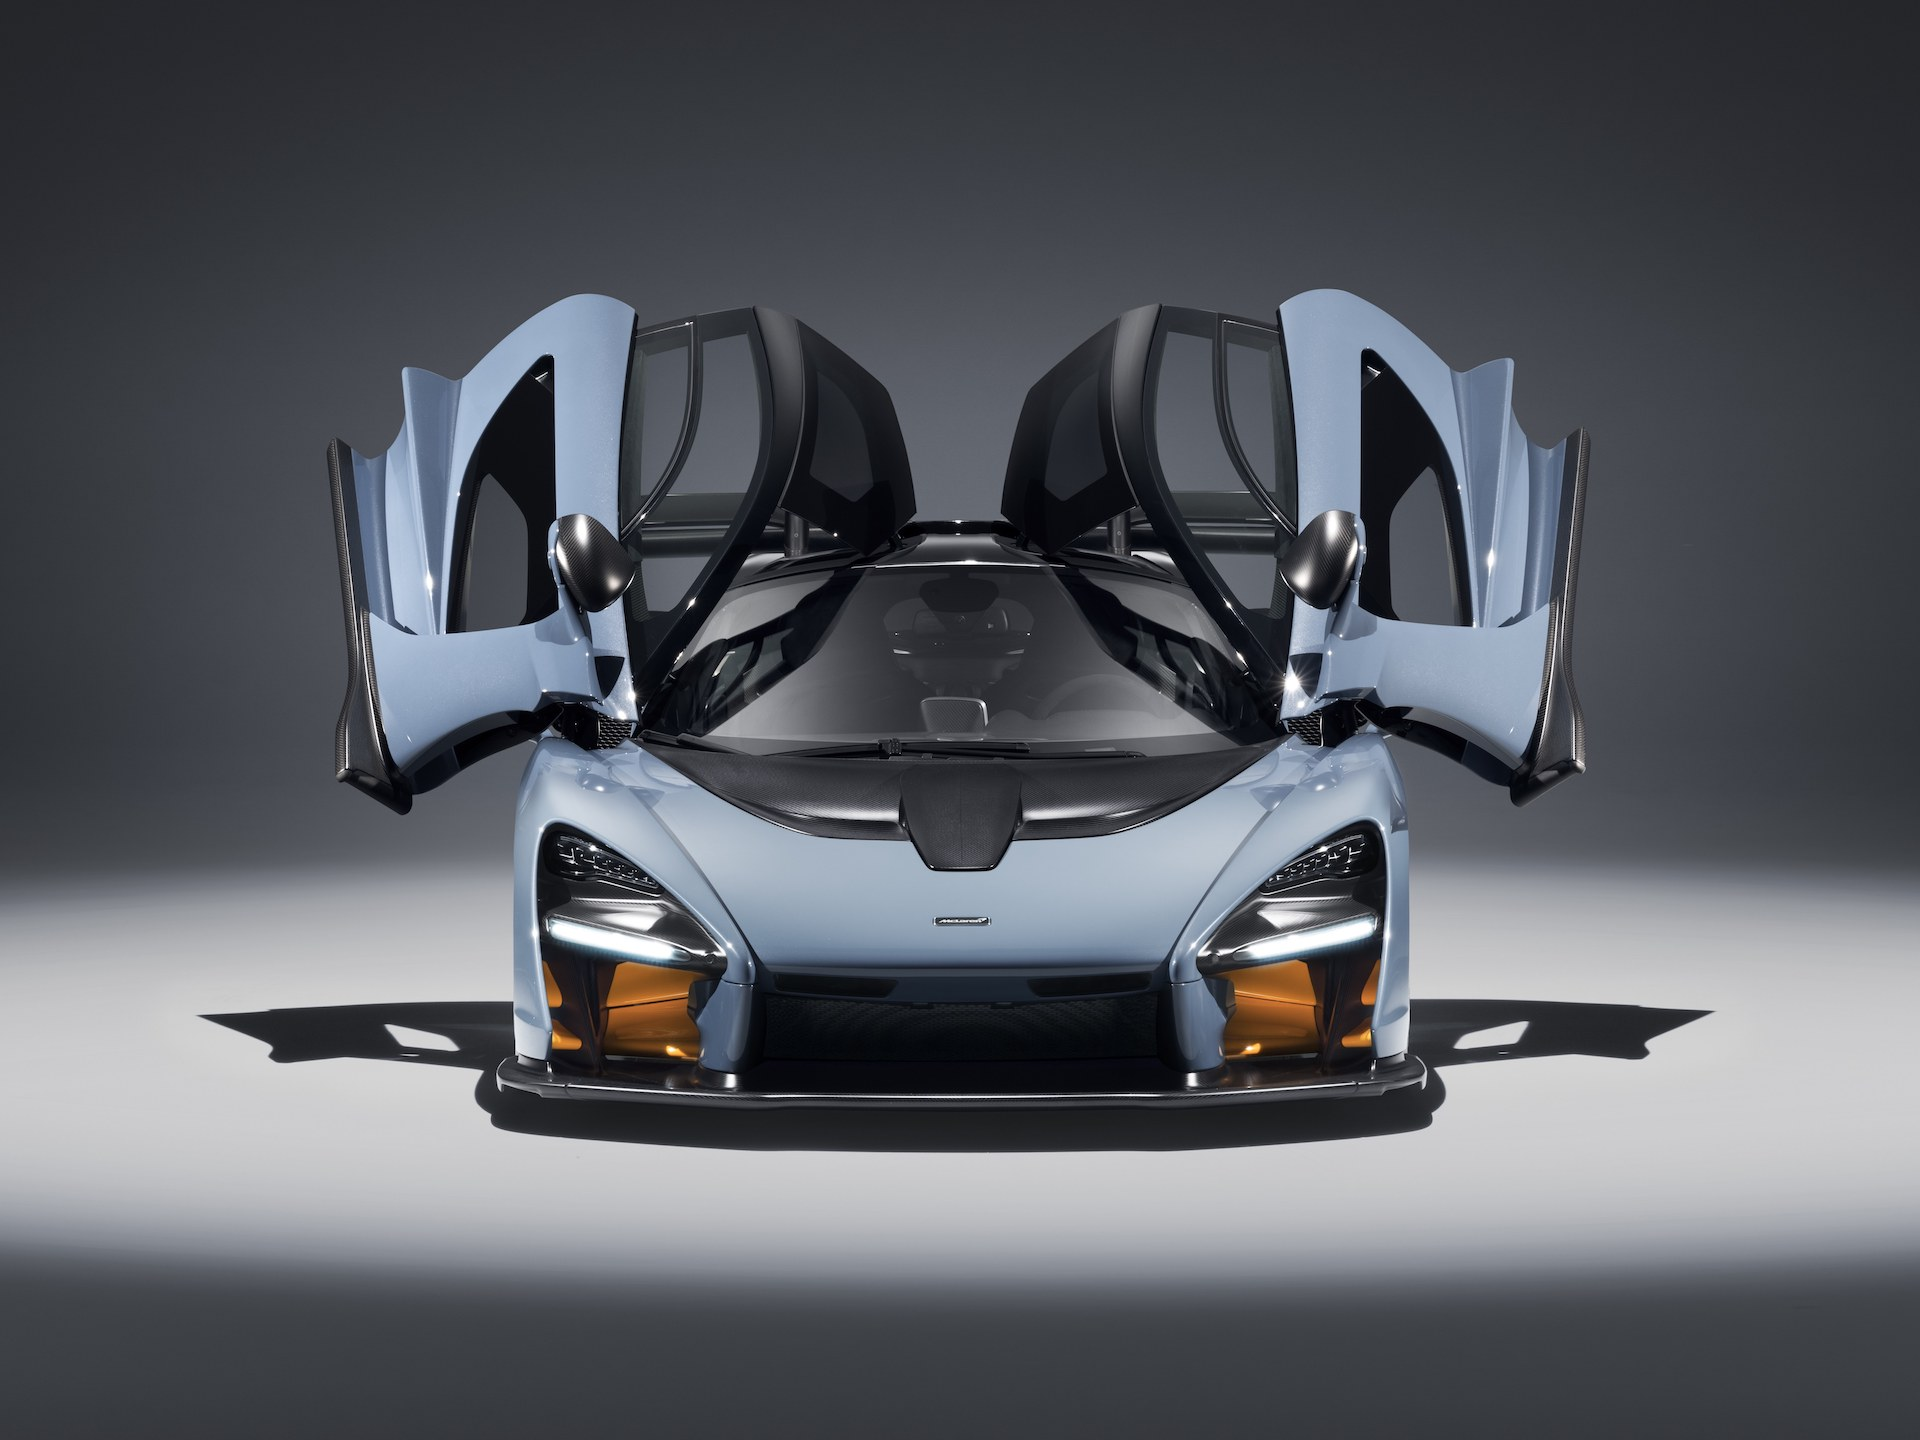 Future McLaren Ultimate Series vehicles will have real names